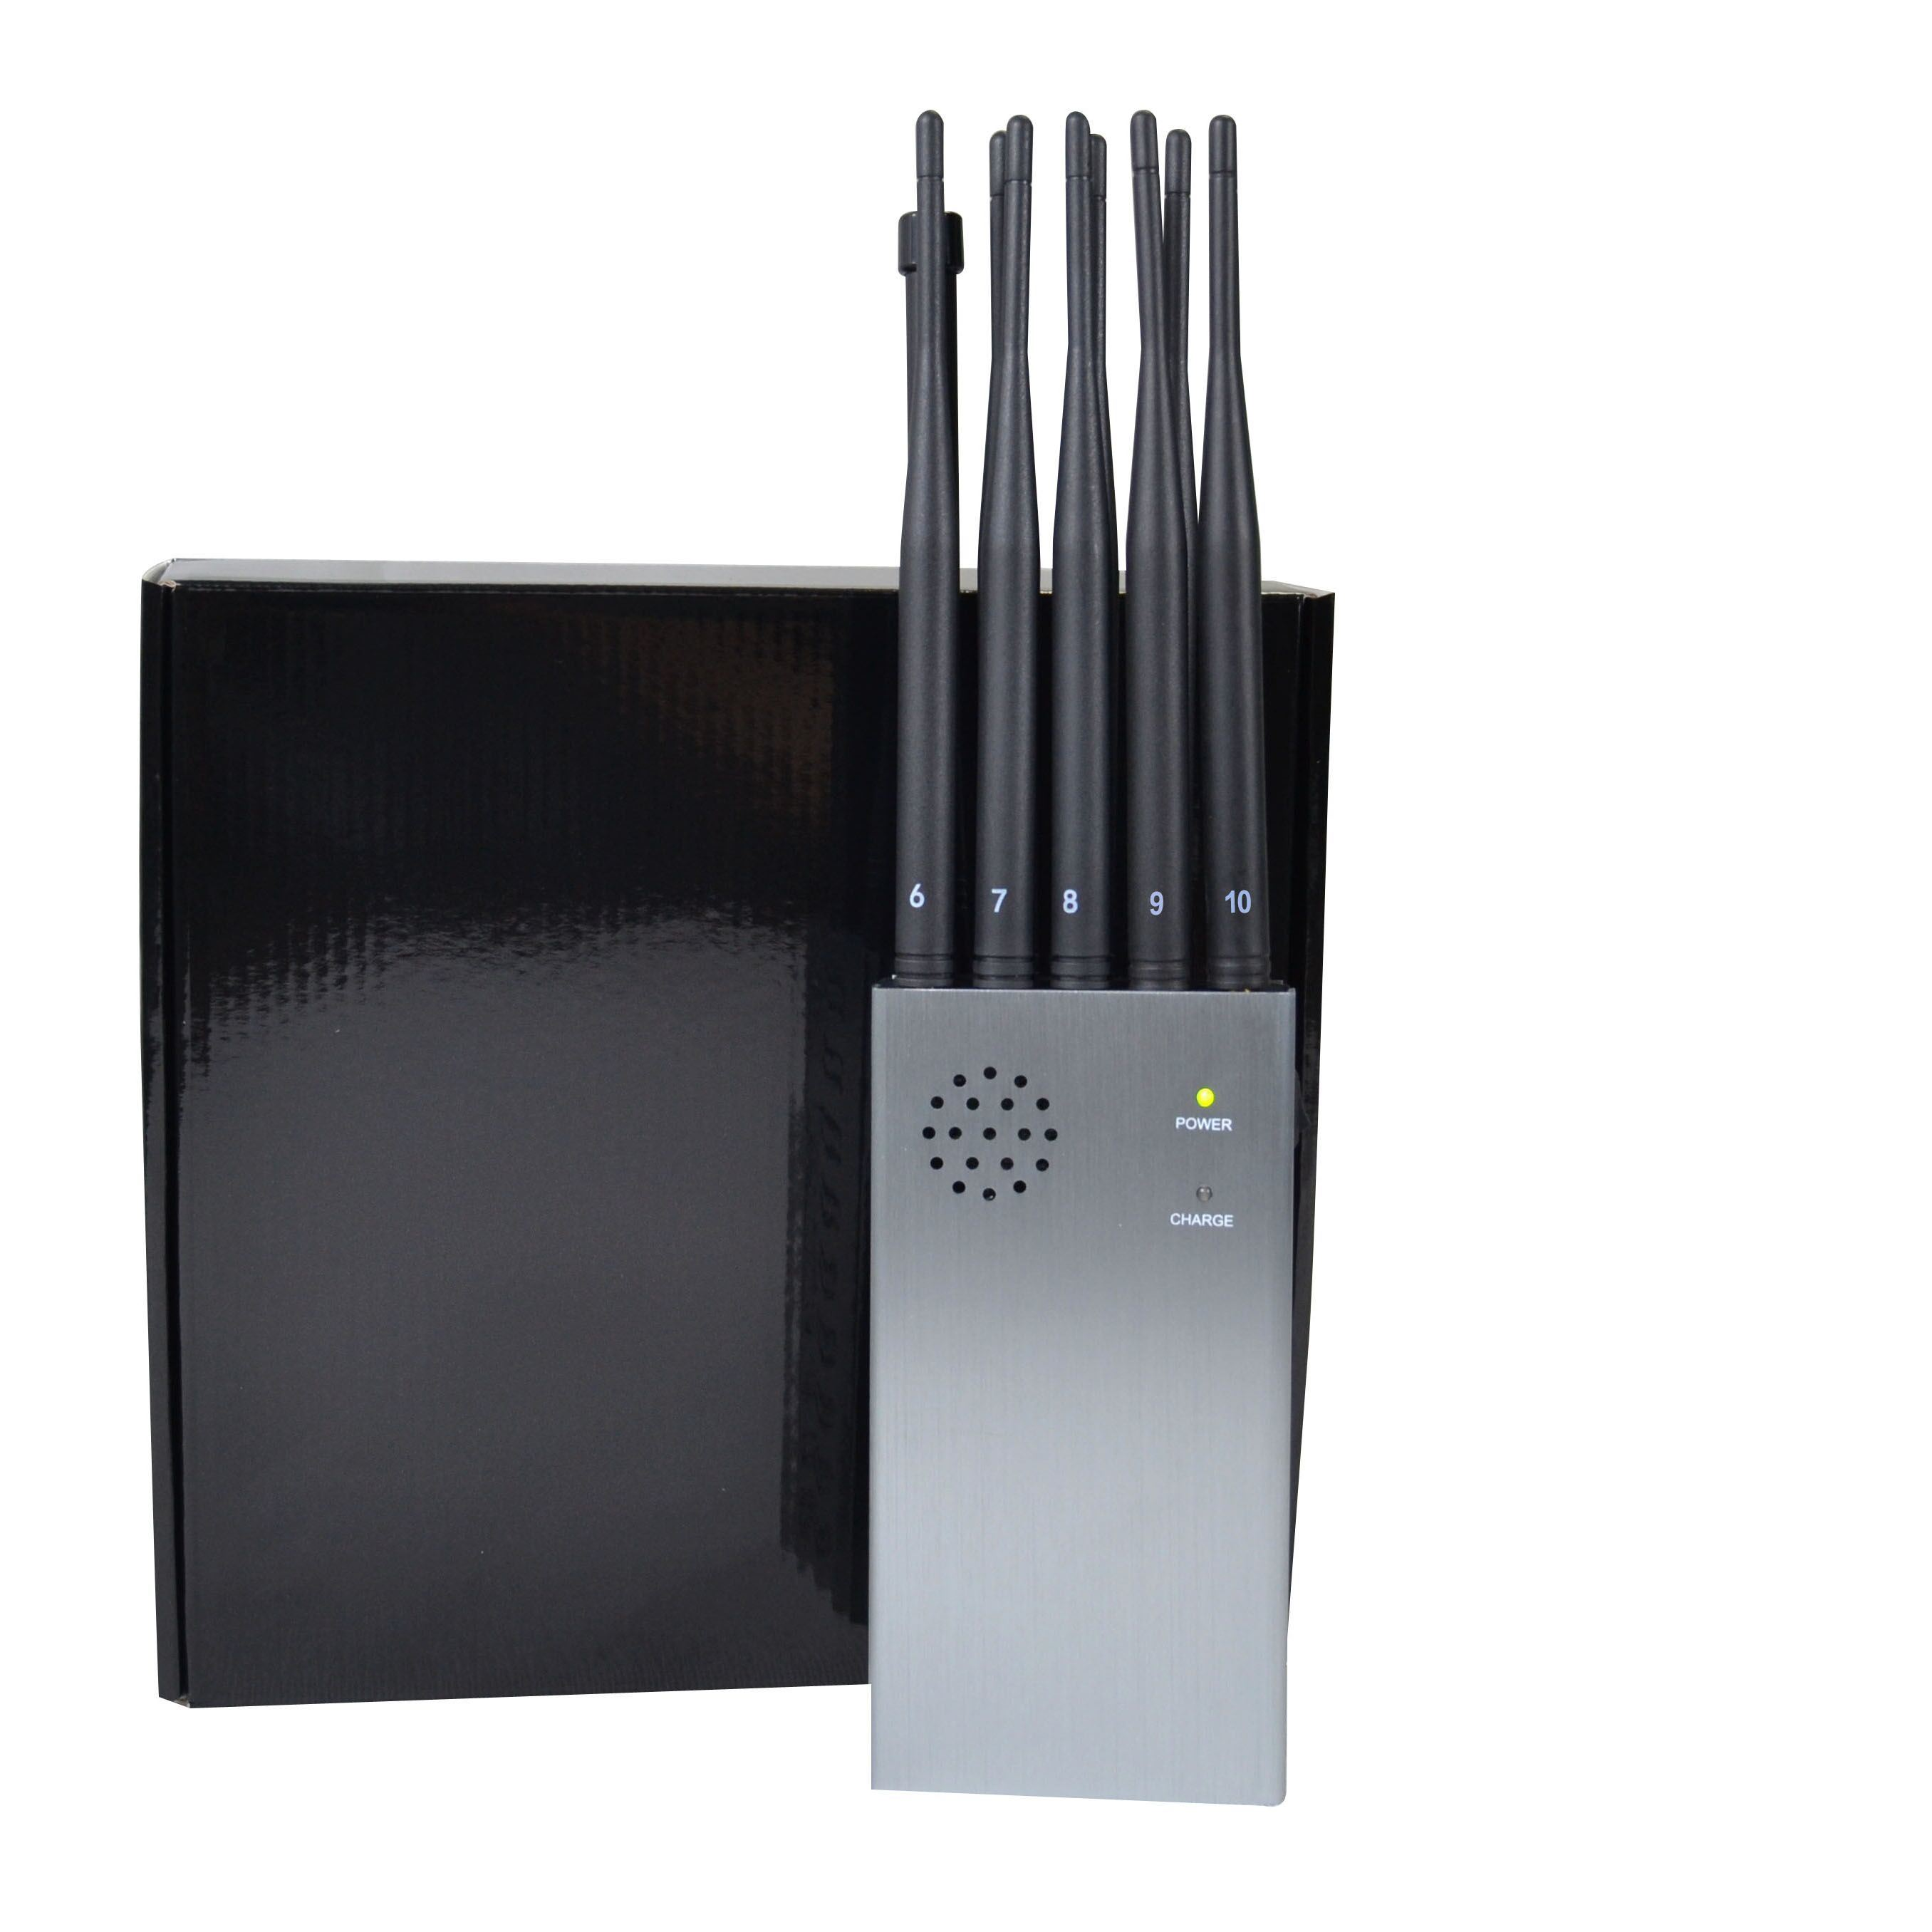 phone gsm jammer press - China High Power up to 8000mA Battery Portable Jammer for Military Using Including Lojack, 3G 4G 2g 5g Remote Control GPS Signals - China 8000mA Battery Jammer, Large Volume Power Signal Blocker